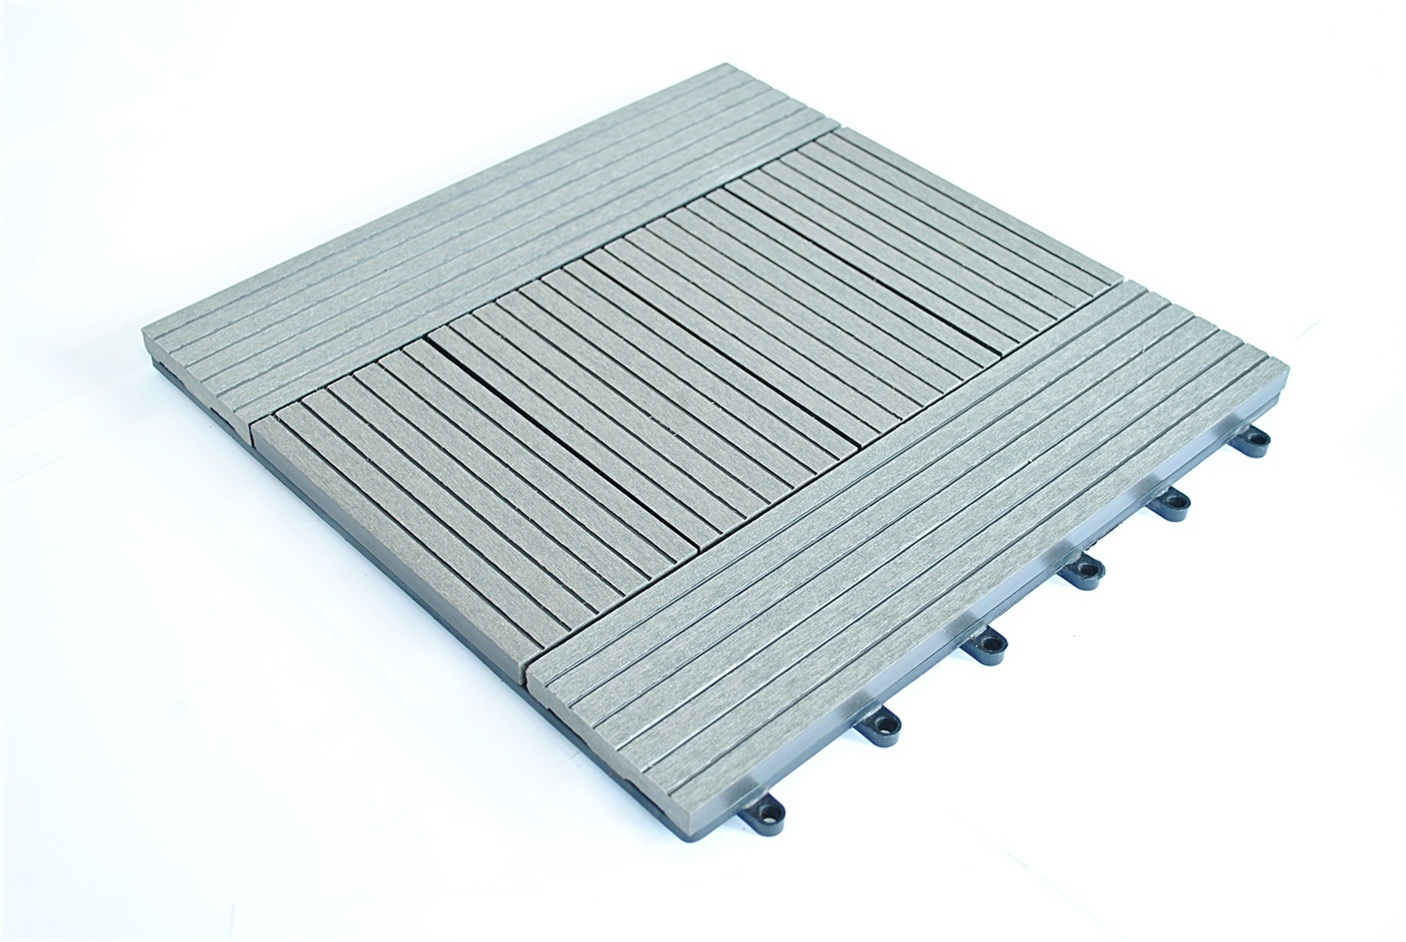 Interlocking Deck Tiles Hot Item Different Patterns Diy Deck Tile Interlocking Deck Tiles Made From